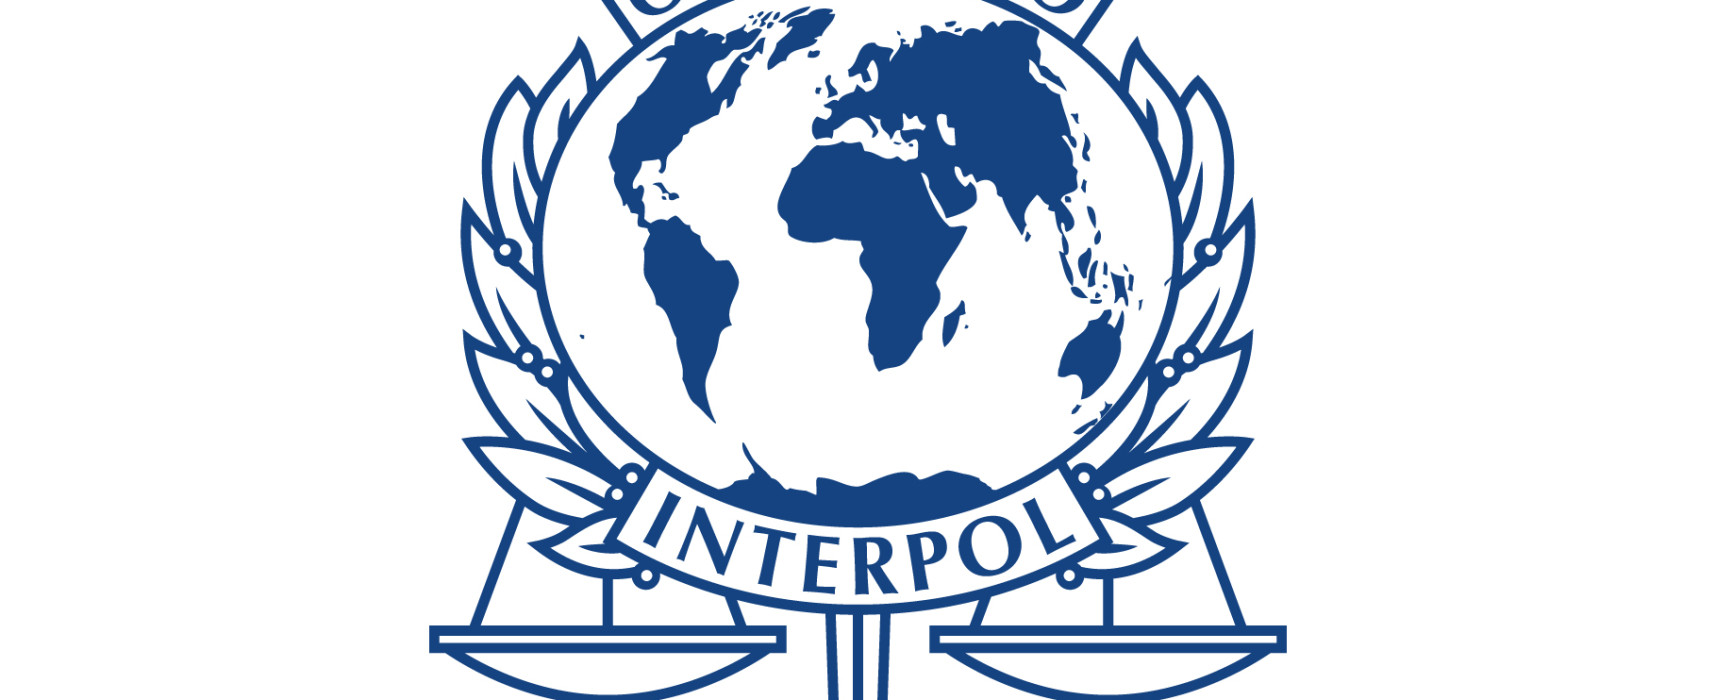 Stage all'Interpol – Francia